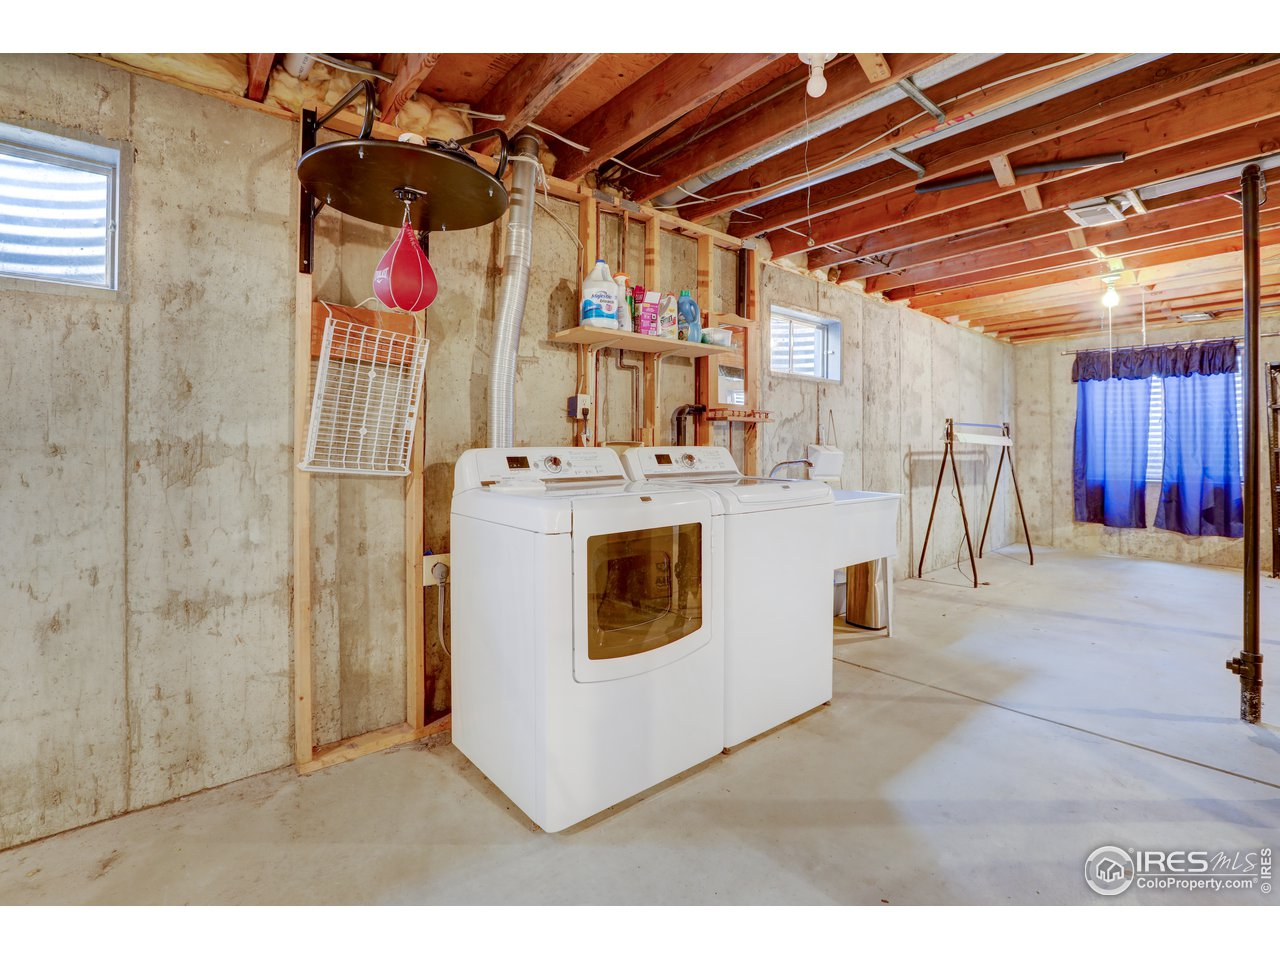 washer /dryer and deep sink are in basement